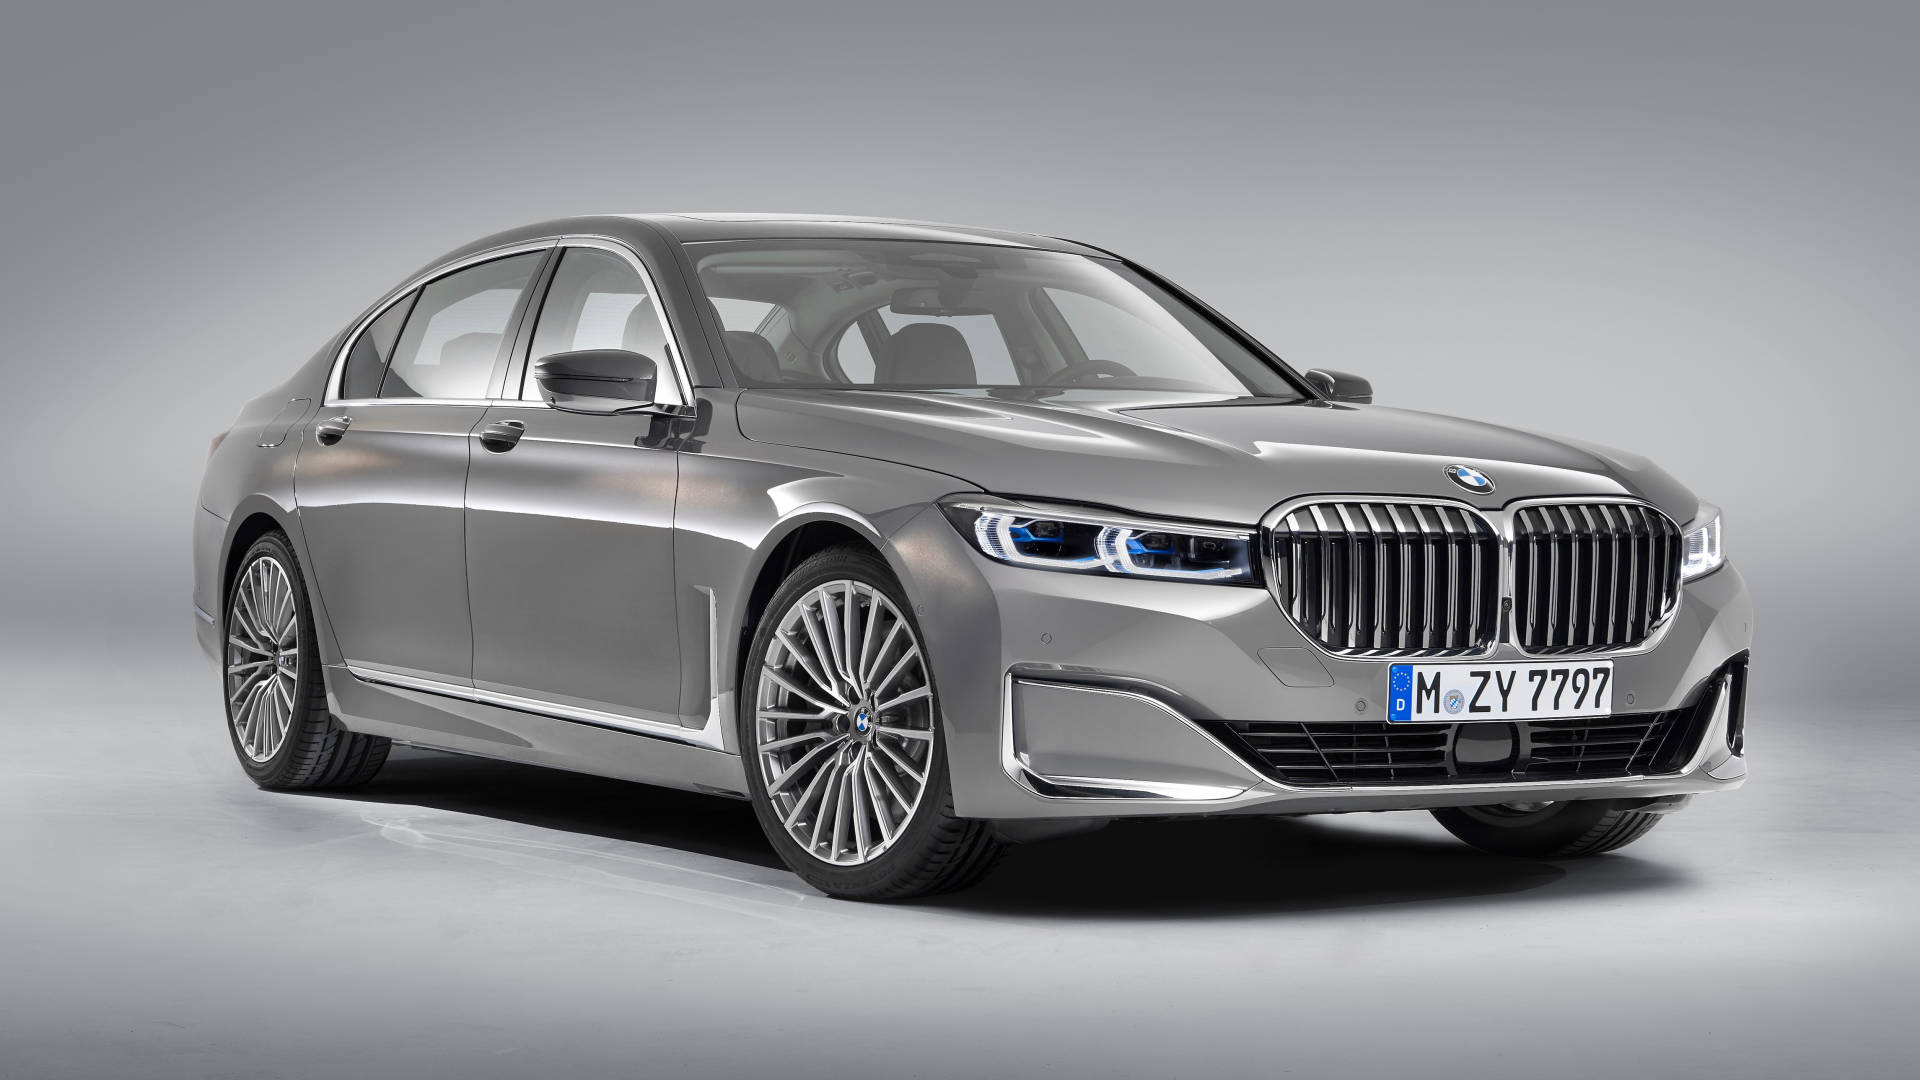 2019 BMW 7 Series front detail